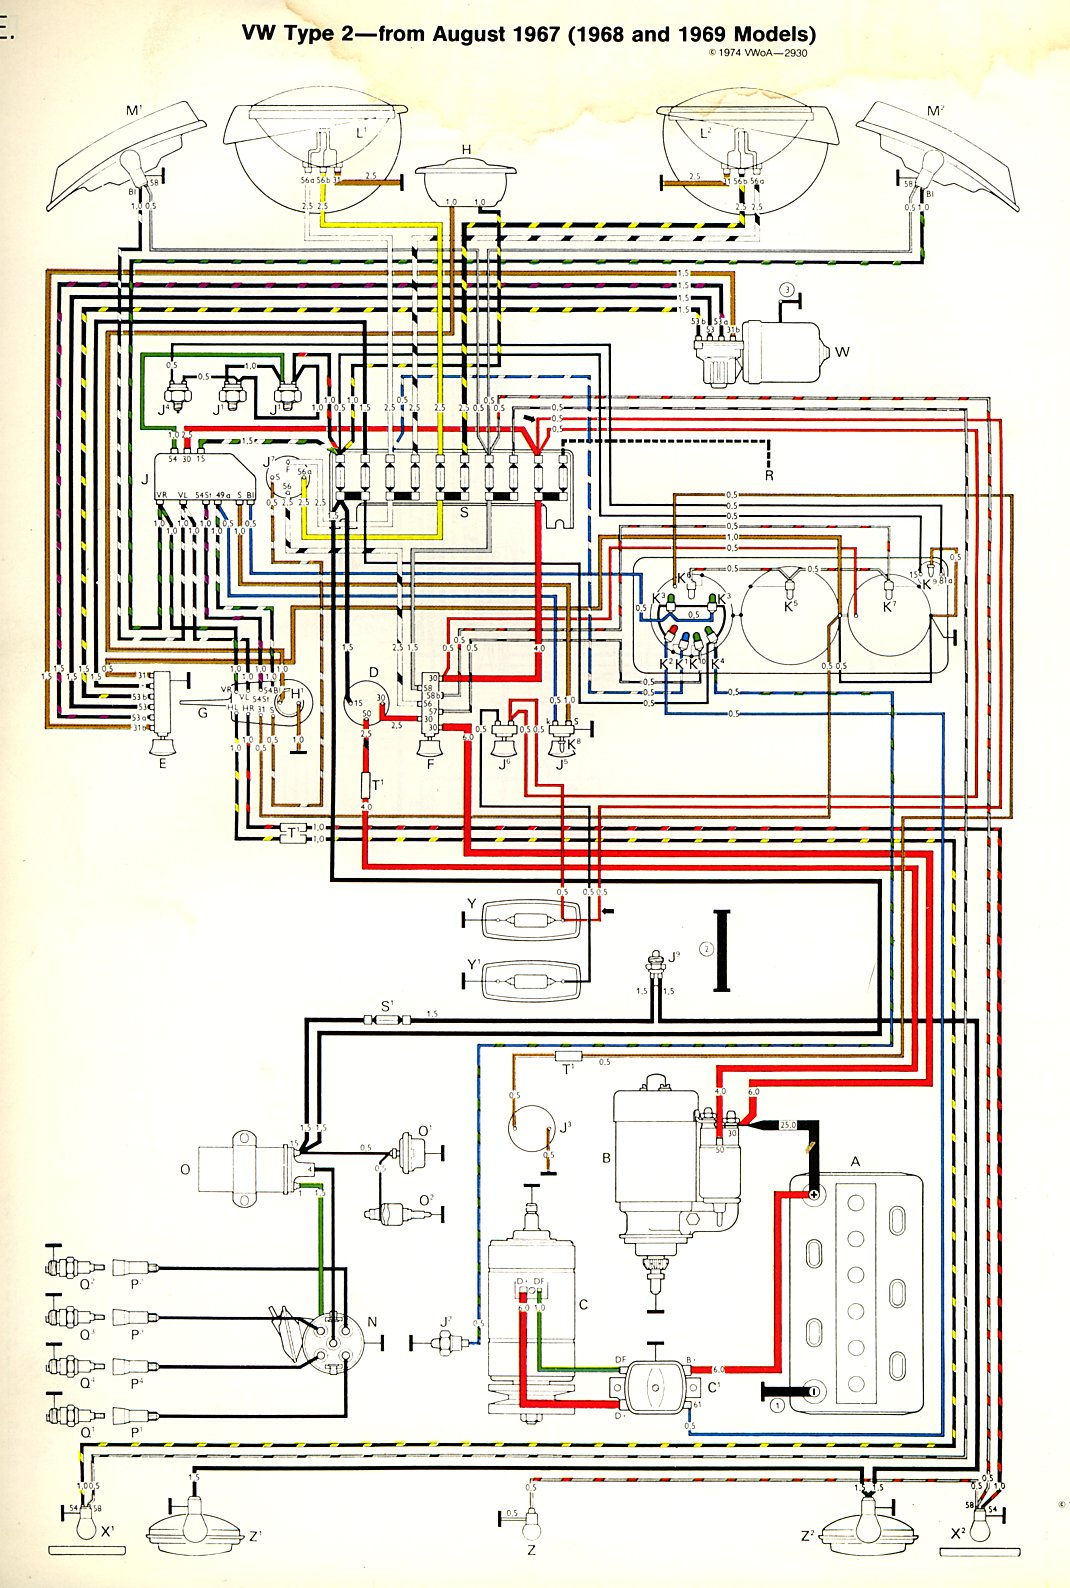 baybus_6869a thesamba com type 2 wiring diagrams Fuel Gauge Wiring Diagram at suagrazia.org